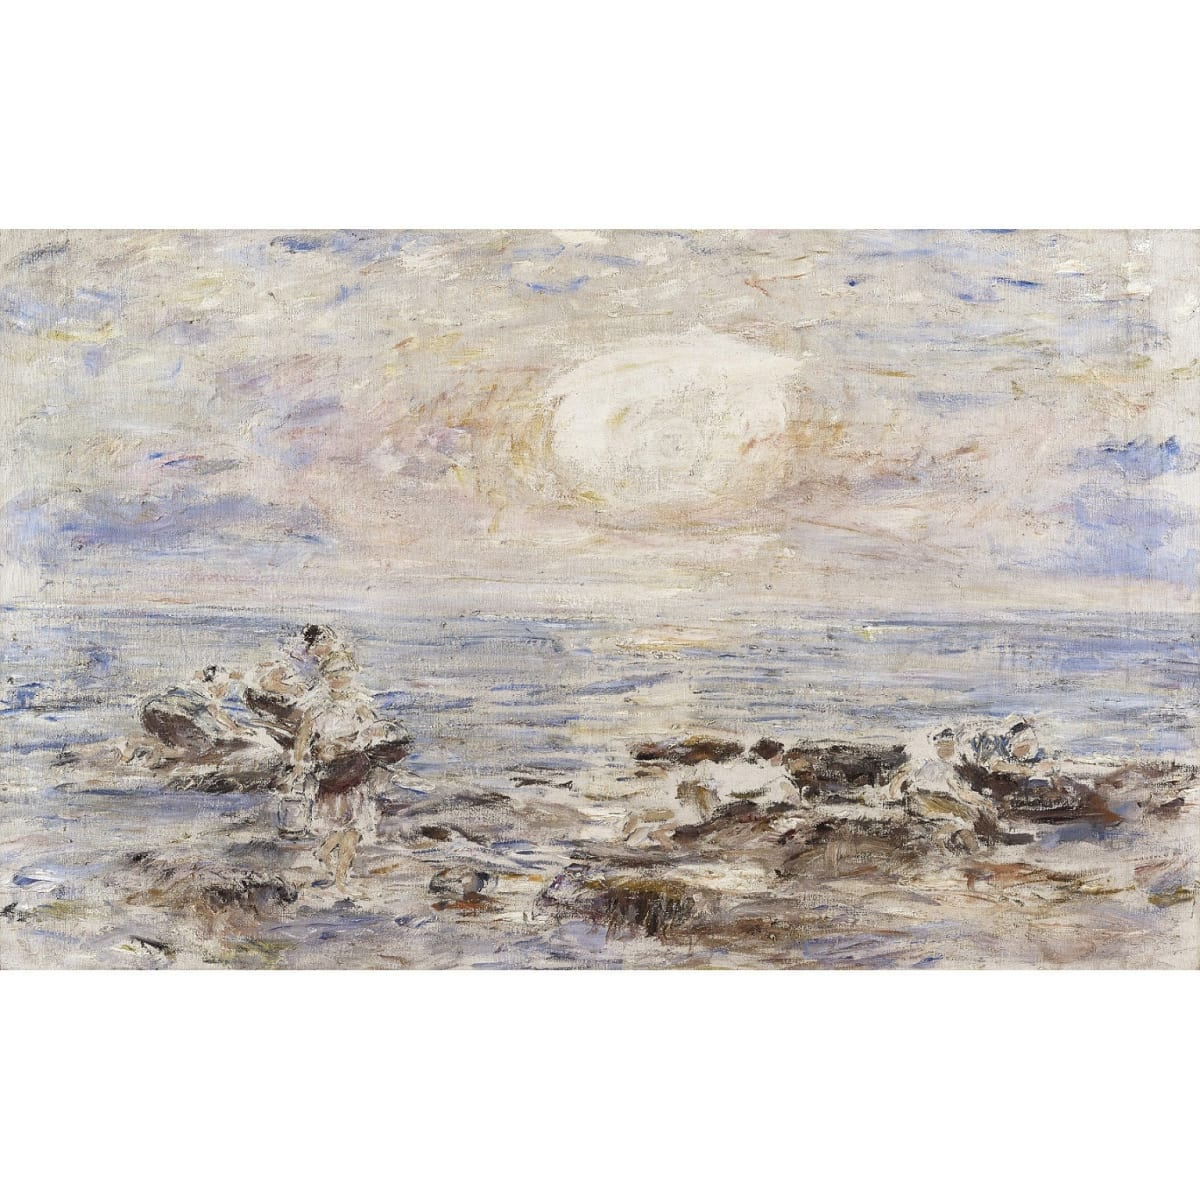 William McTaggart Bait gatherers - sunset, c.1907 oil on canvas 41 x 65 inches